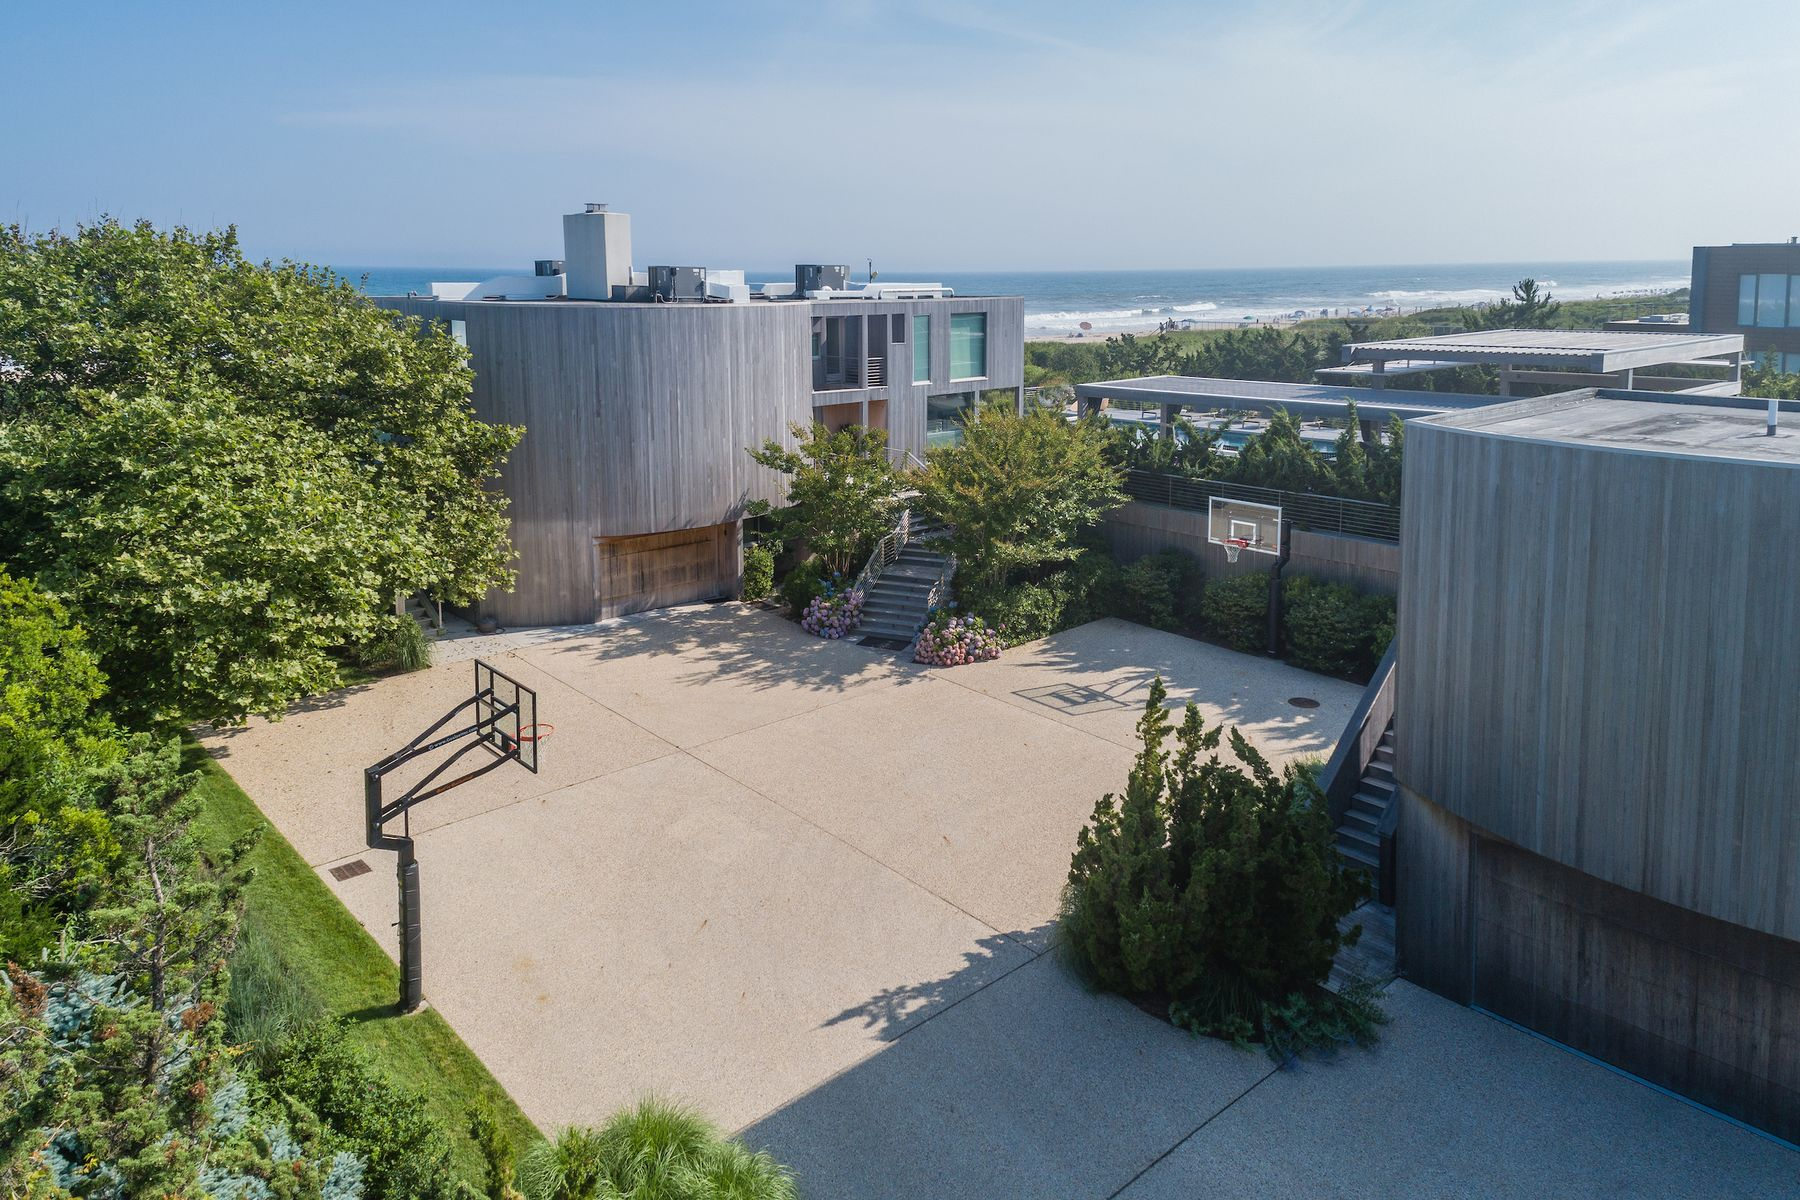 Single Family Home for Sale at The Best of The Best Oceanfront 67 Surfside Road Bridgehampton, New York 11932 United States